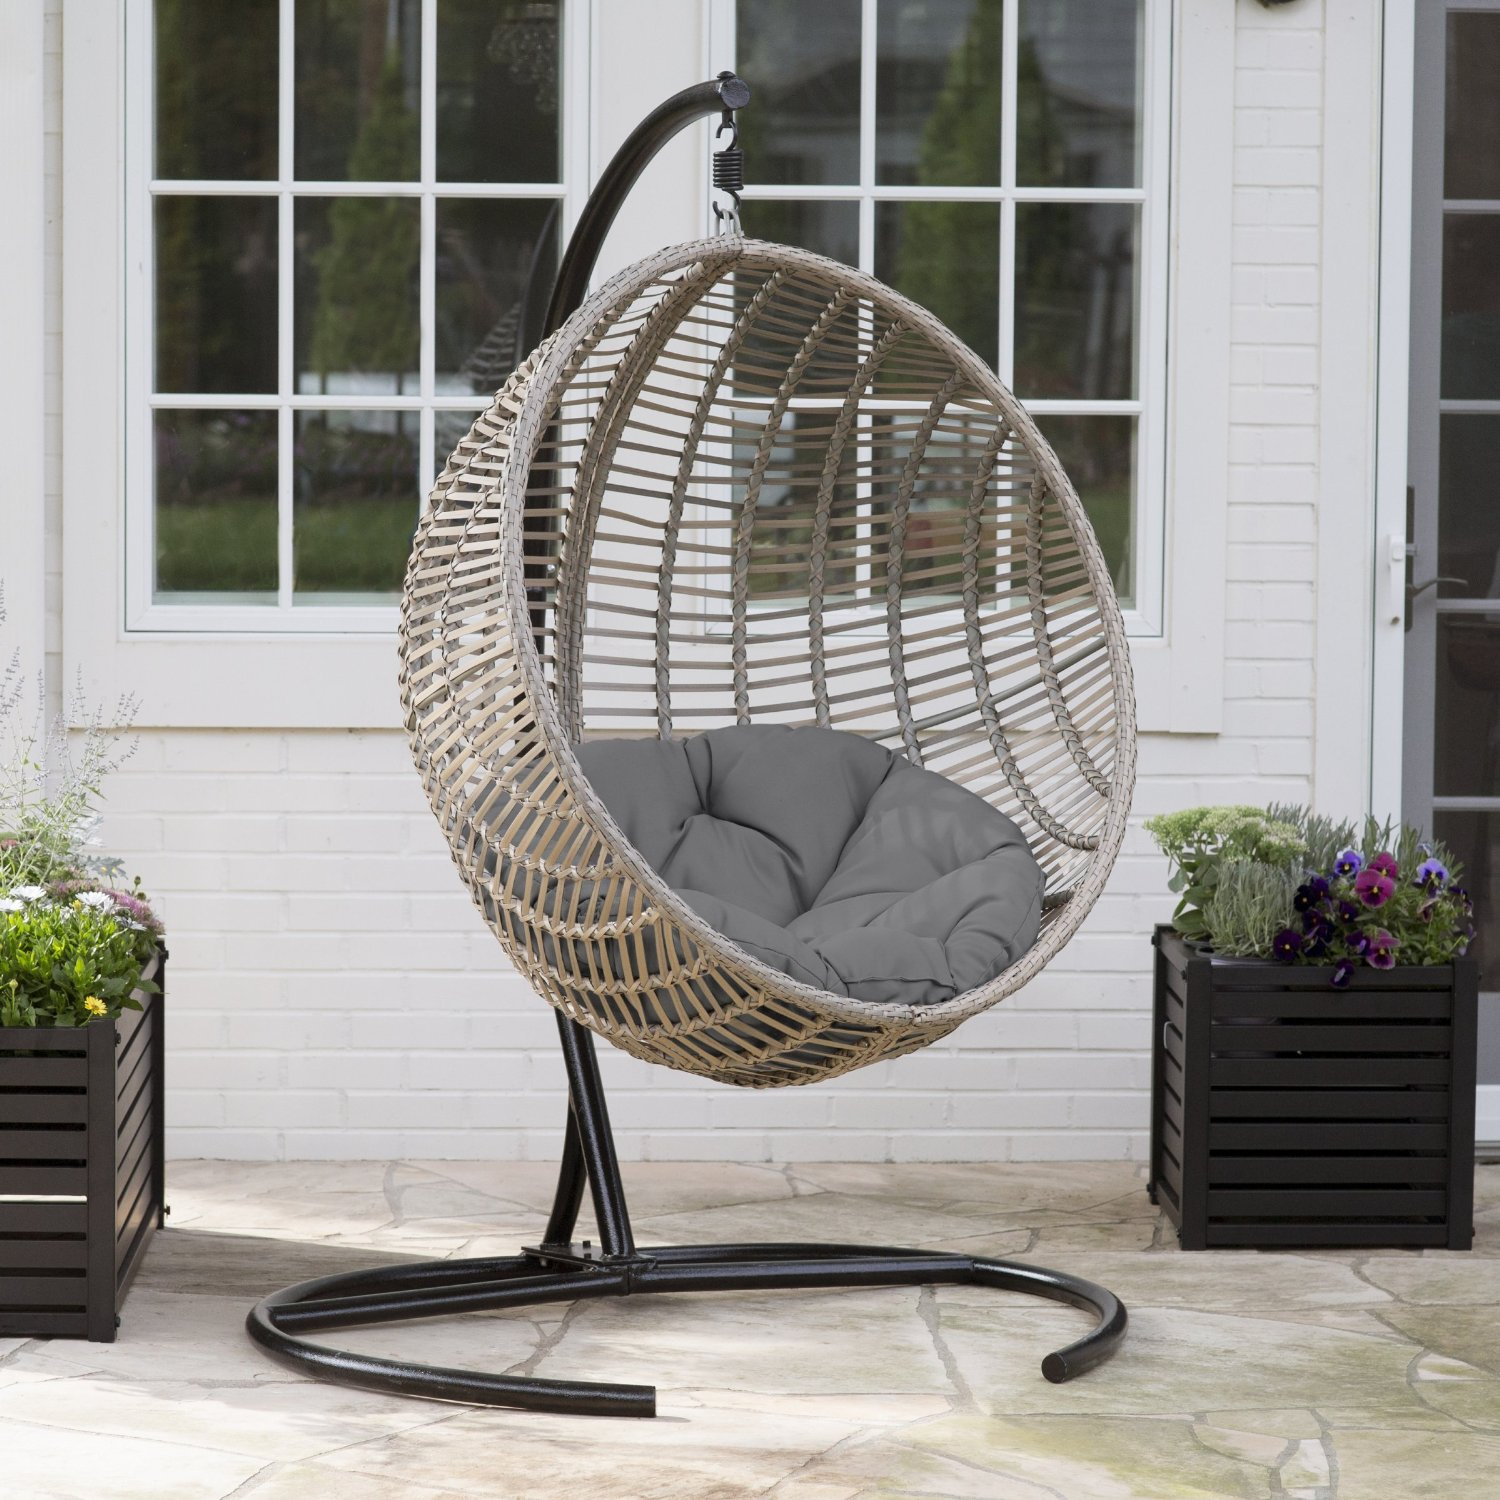 Outdoor Swing Chair with Stand by Island Bay